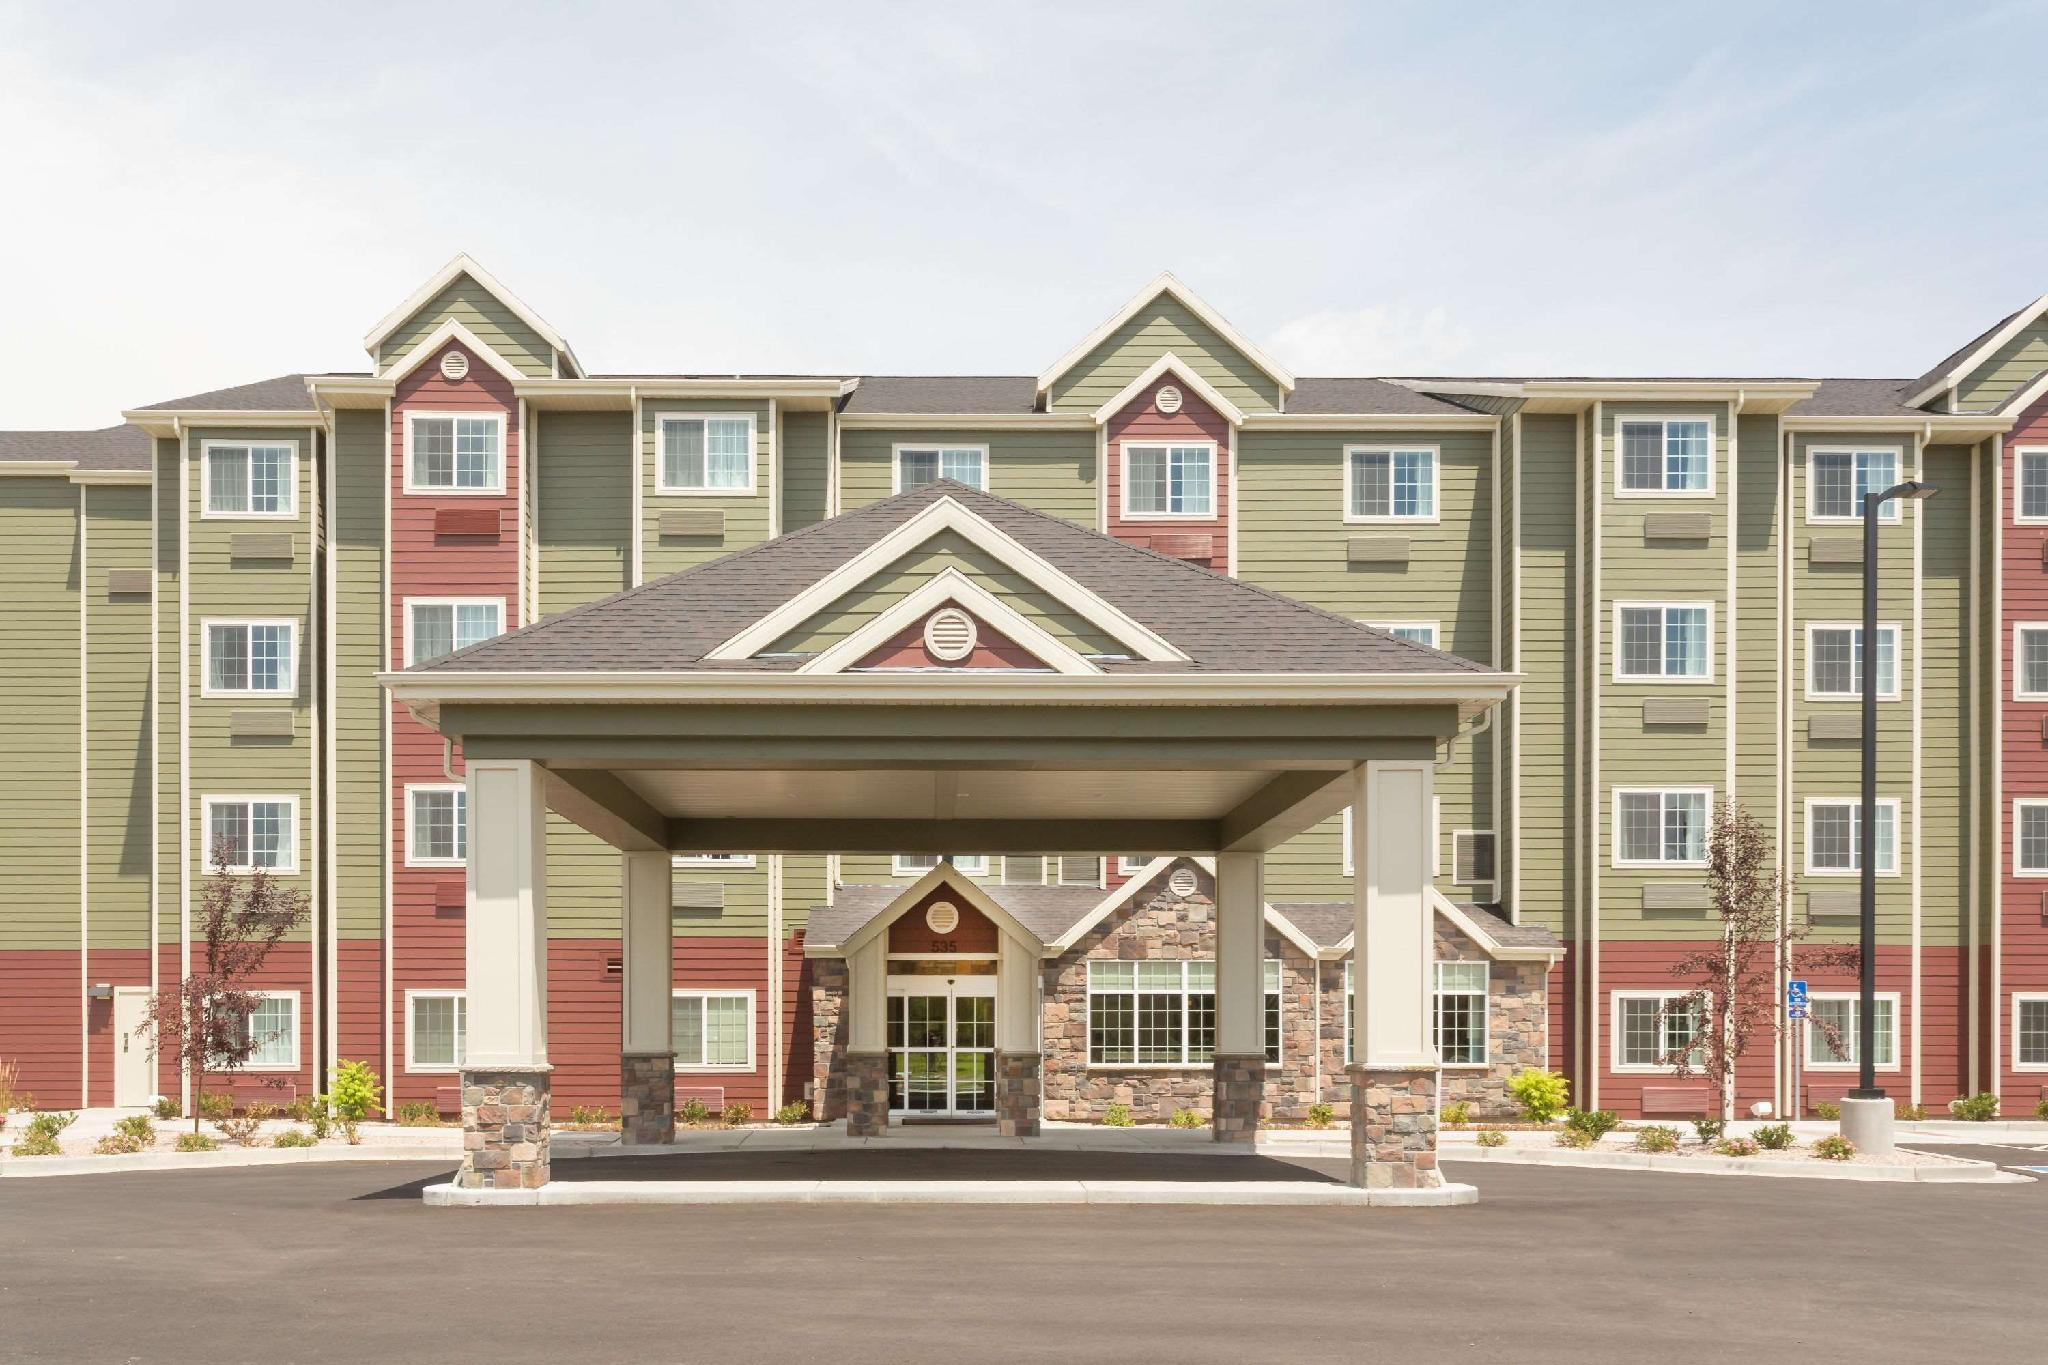 Microtel Inn And Suites By Wyndham Springville Provo